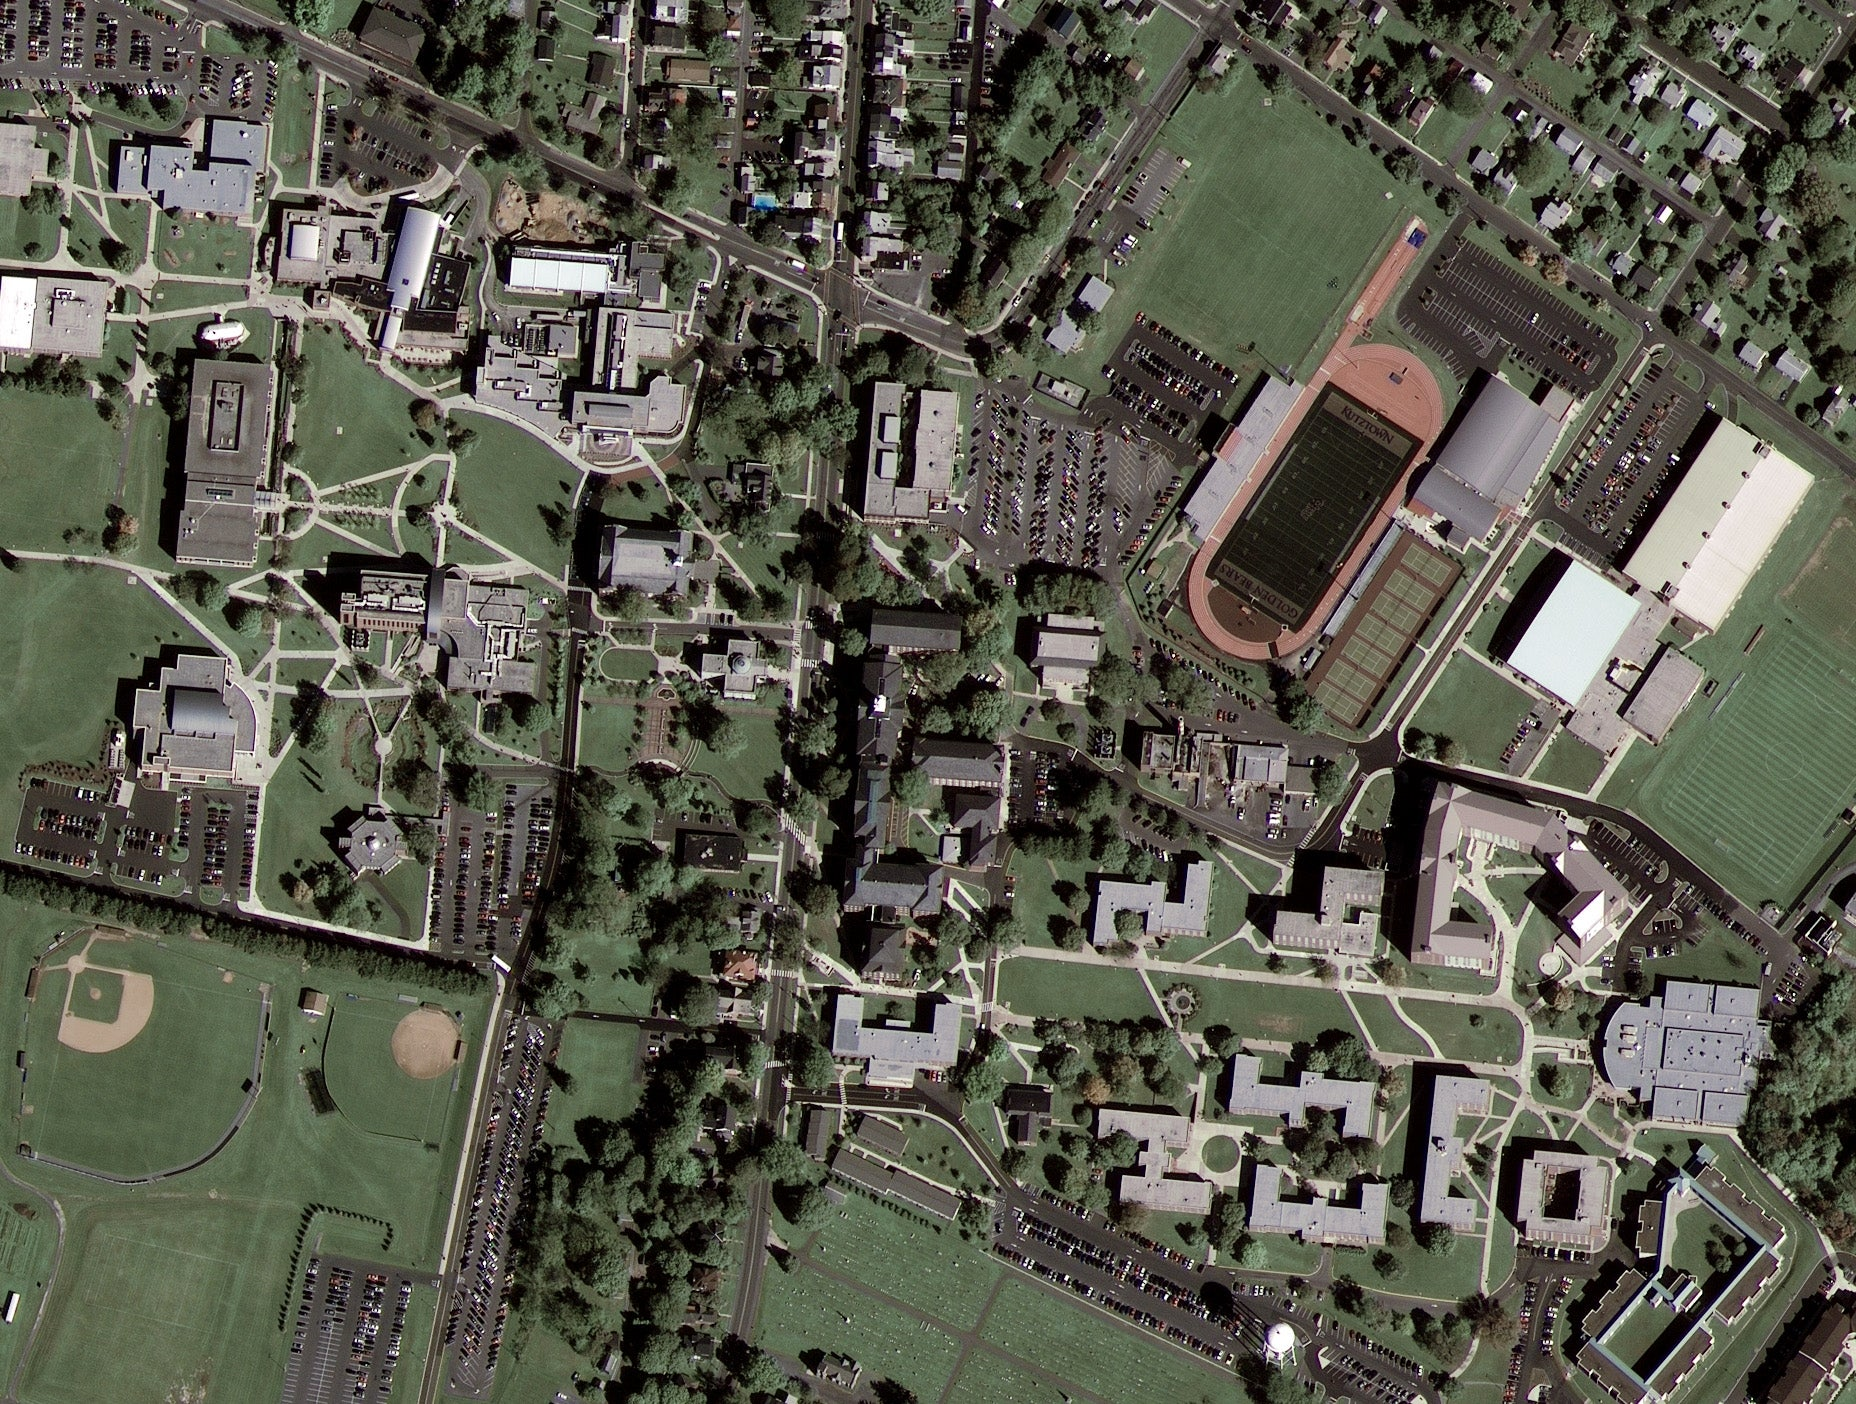 First Image from GeoEye-1